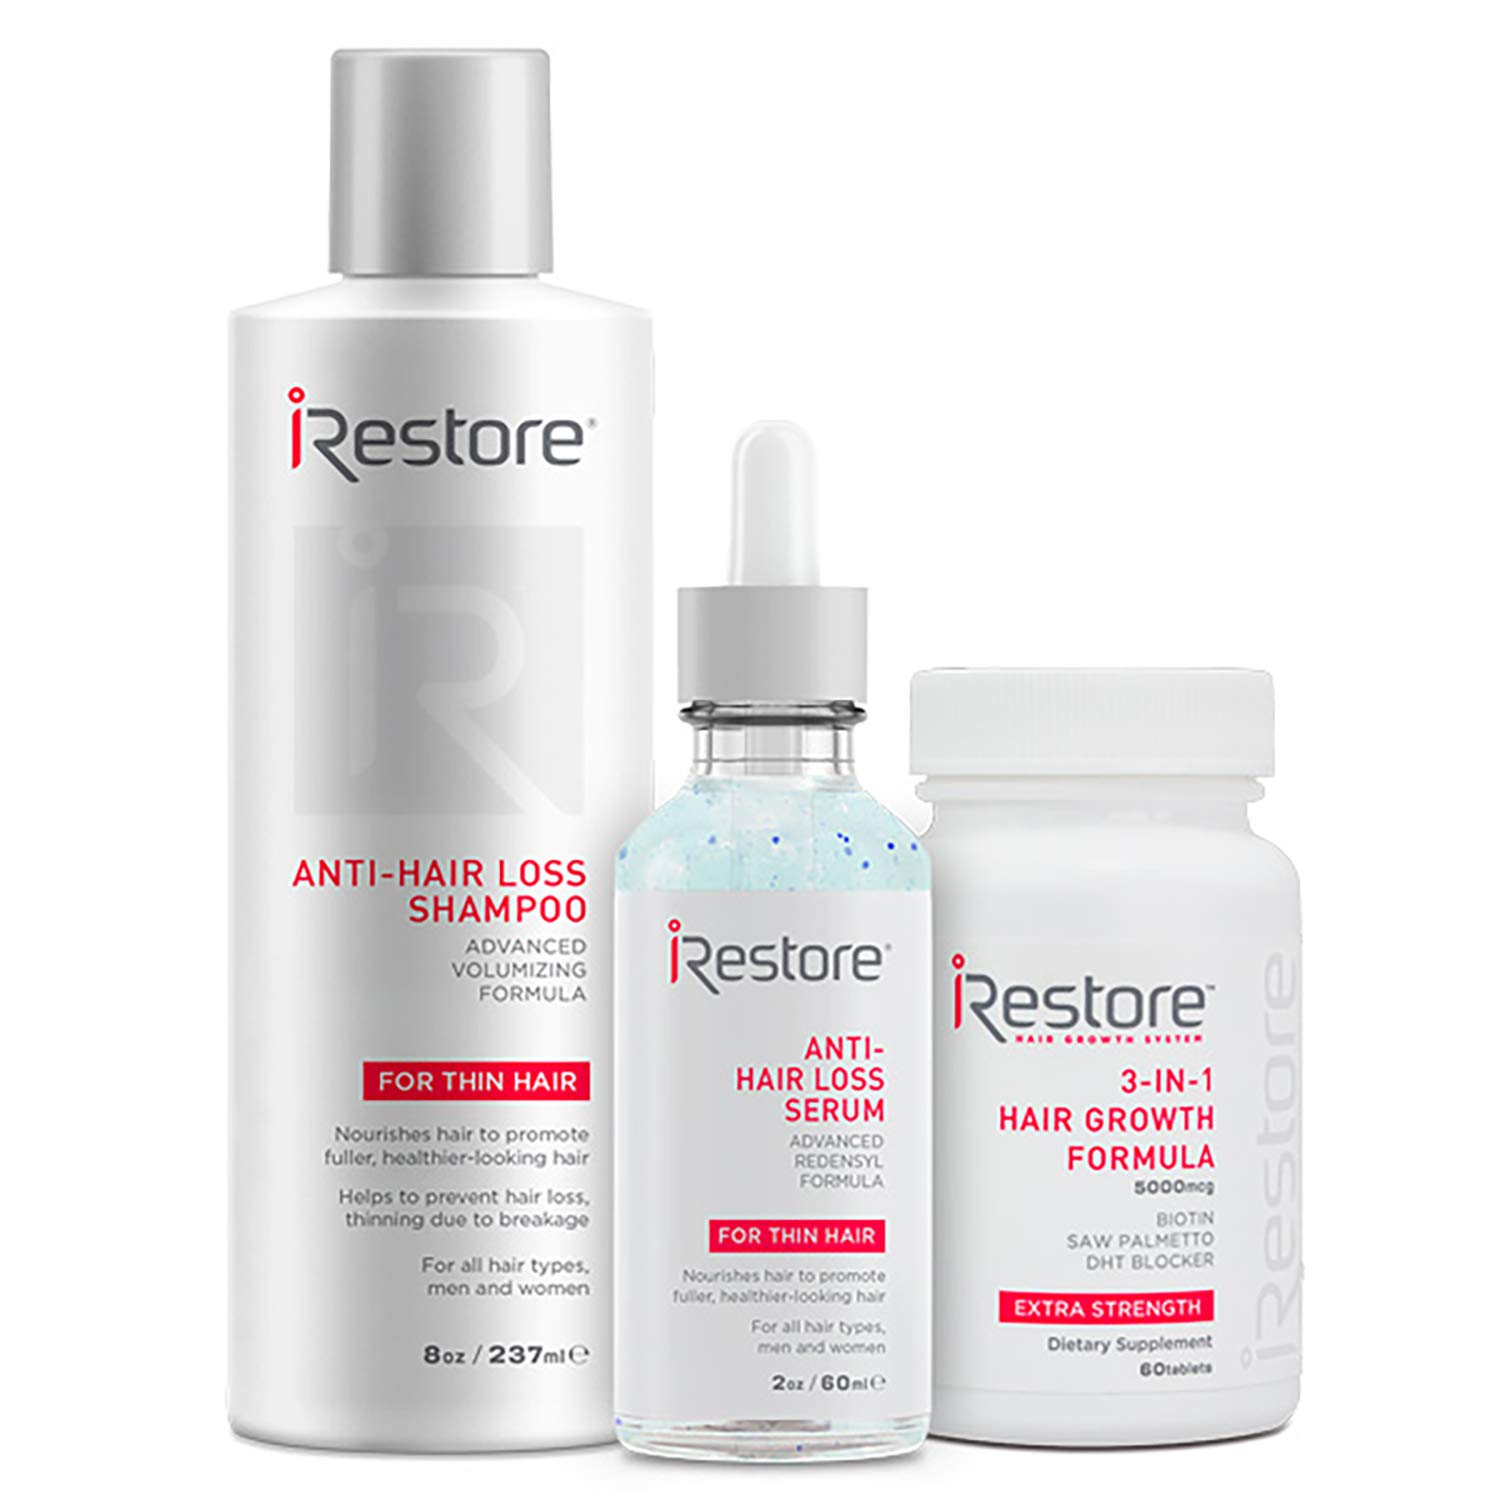 iRestore Fast Hair Growth Bundle includes the 3-in-1 Hair Growth Supplement, Anti-Hair Loss Serum, and Anti-Hair Loss Shampoo to combat hair loss by iRestore